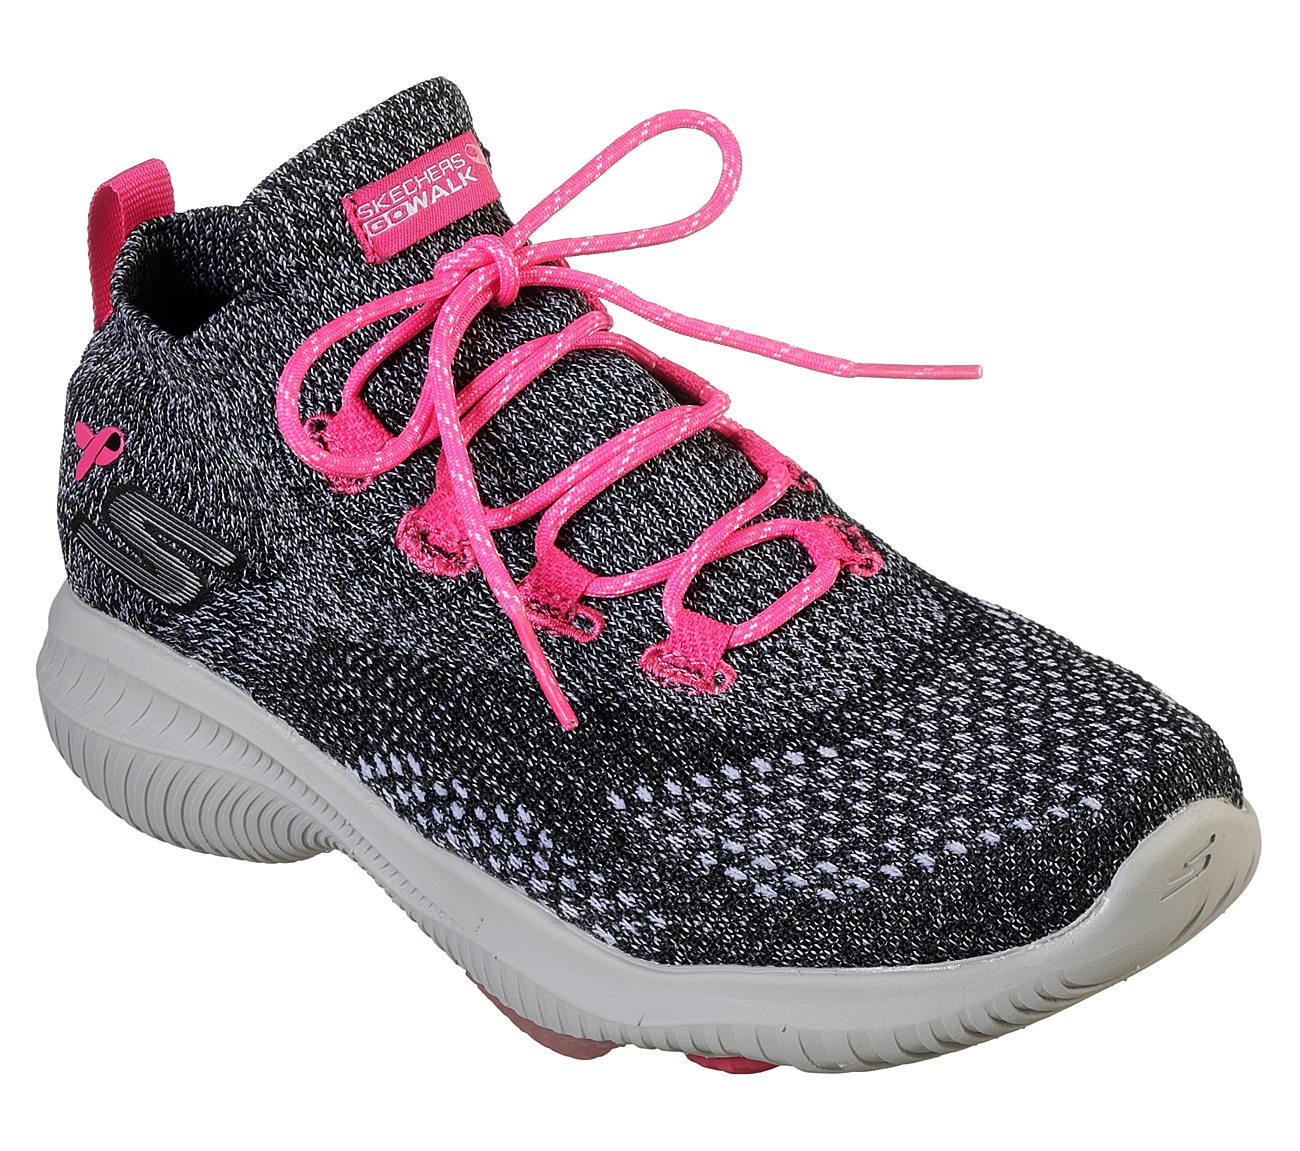 87f8311e0225 Buy SKECHERS Skechers GOwalk Revolution Ultra - Hope Skechers ...